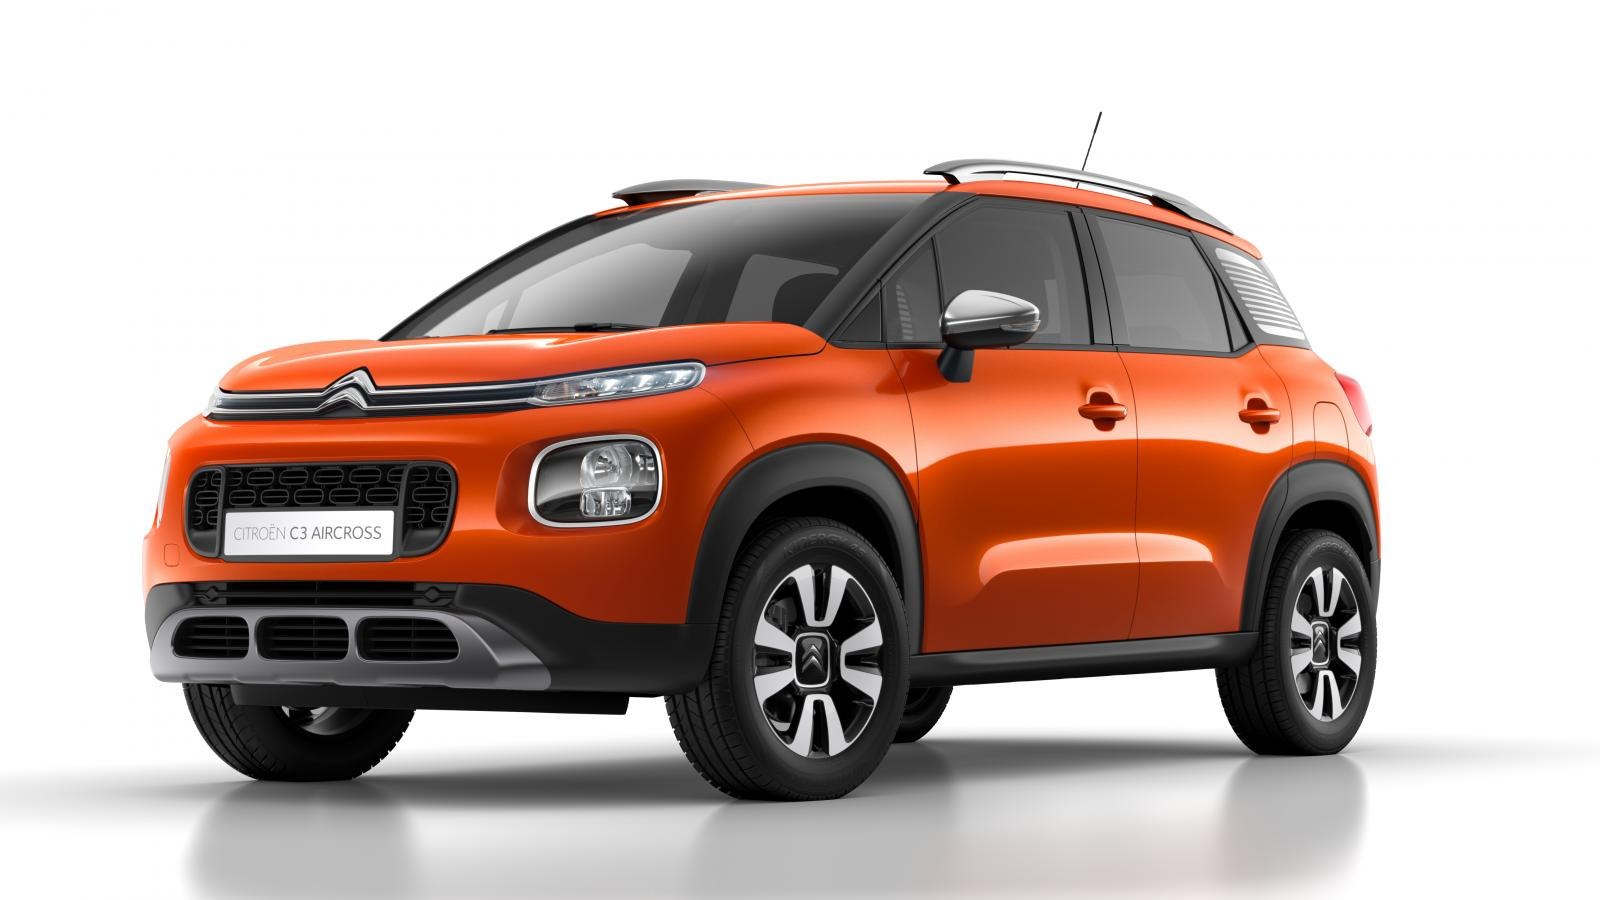 SUV Compact C3 Aircross Spicy Orange